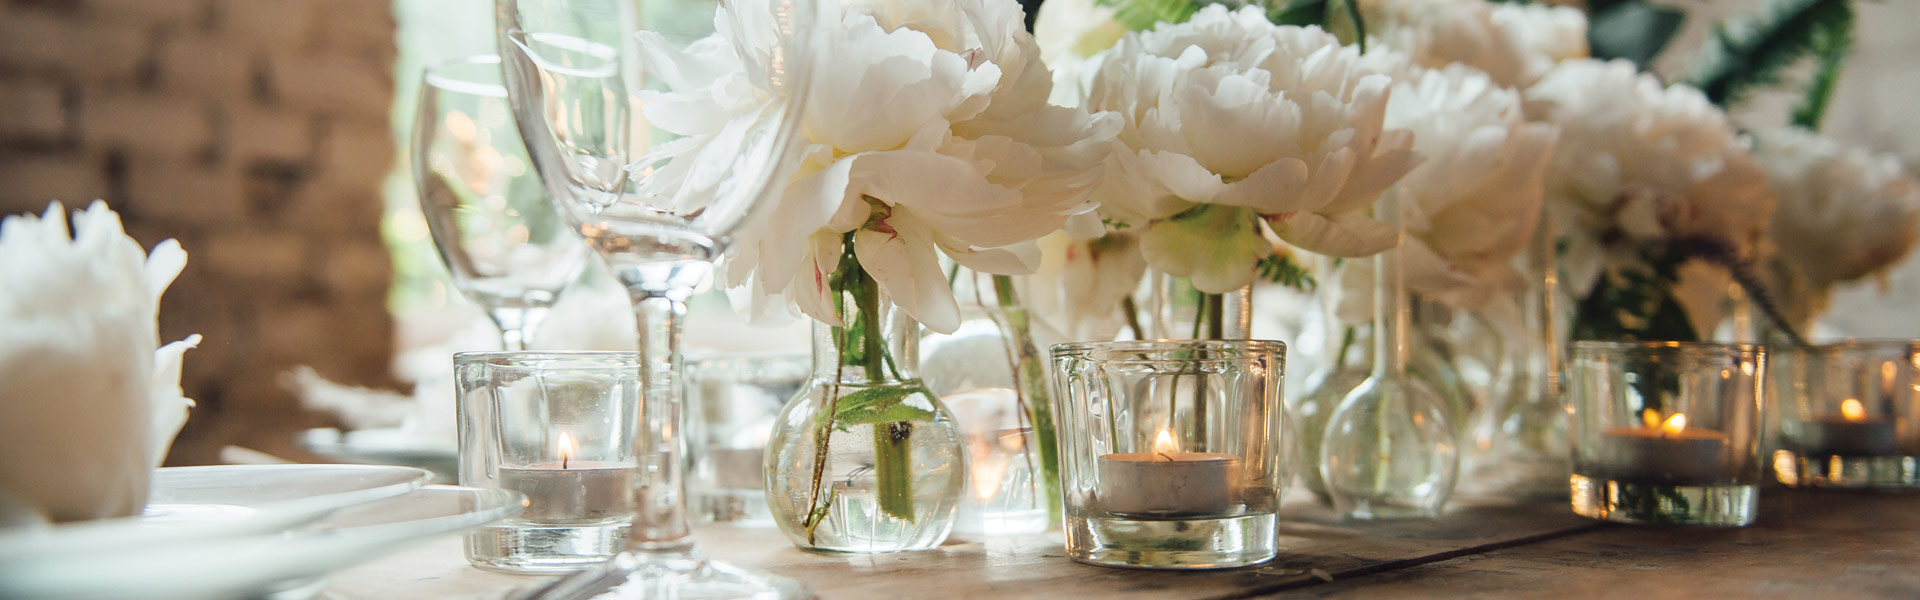 8 Wedding Trends for 2018